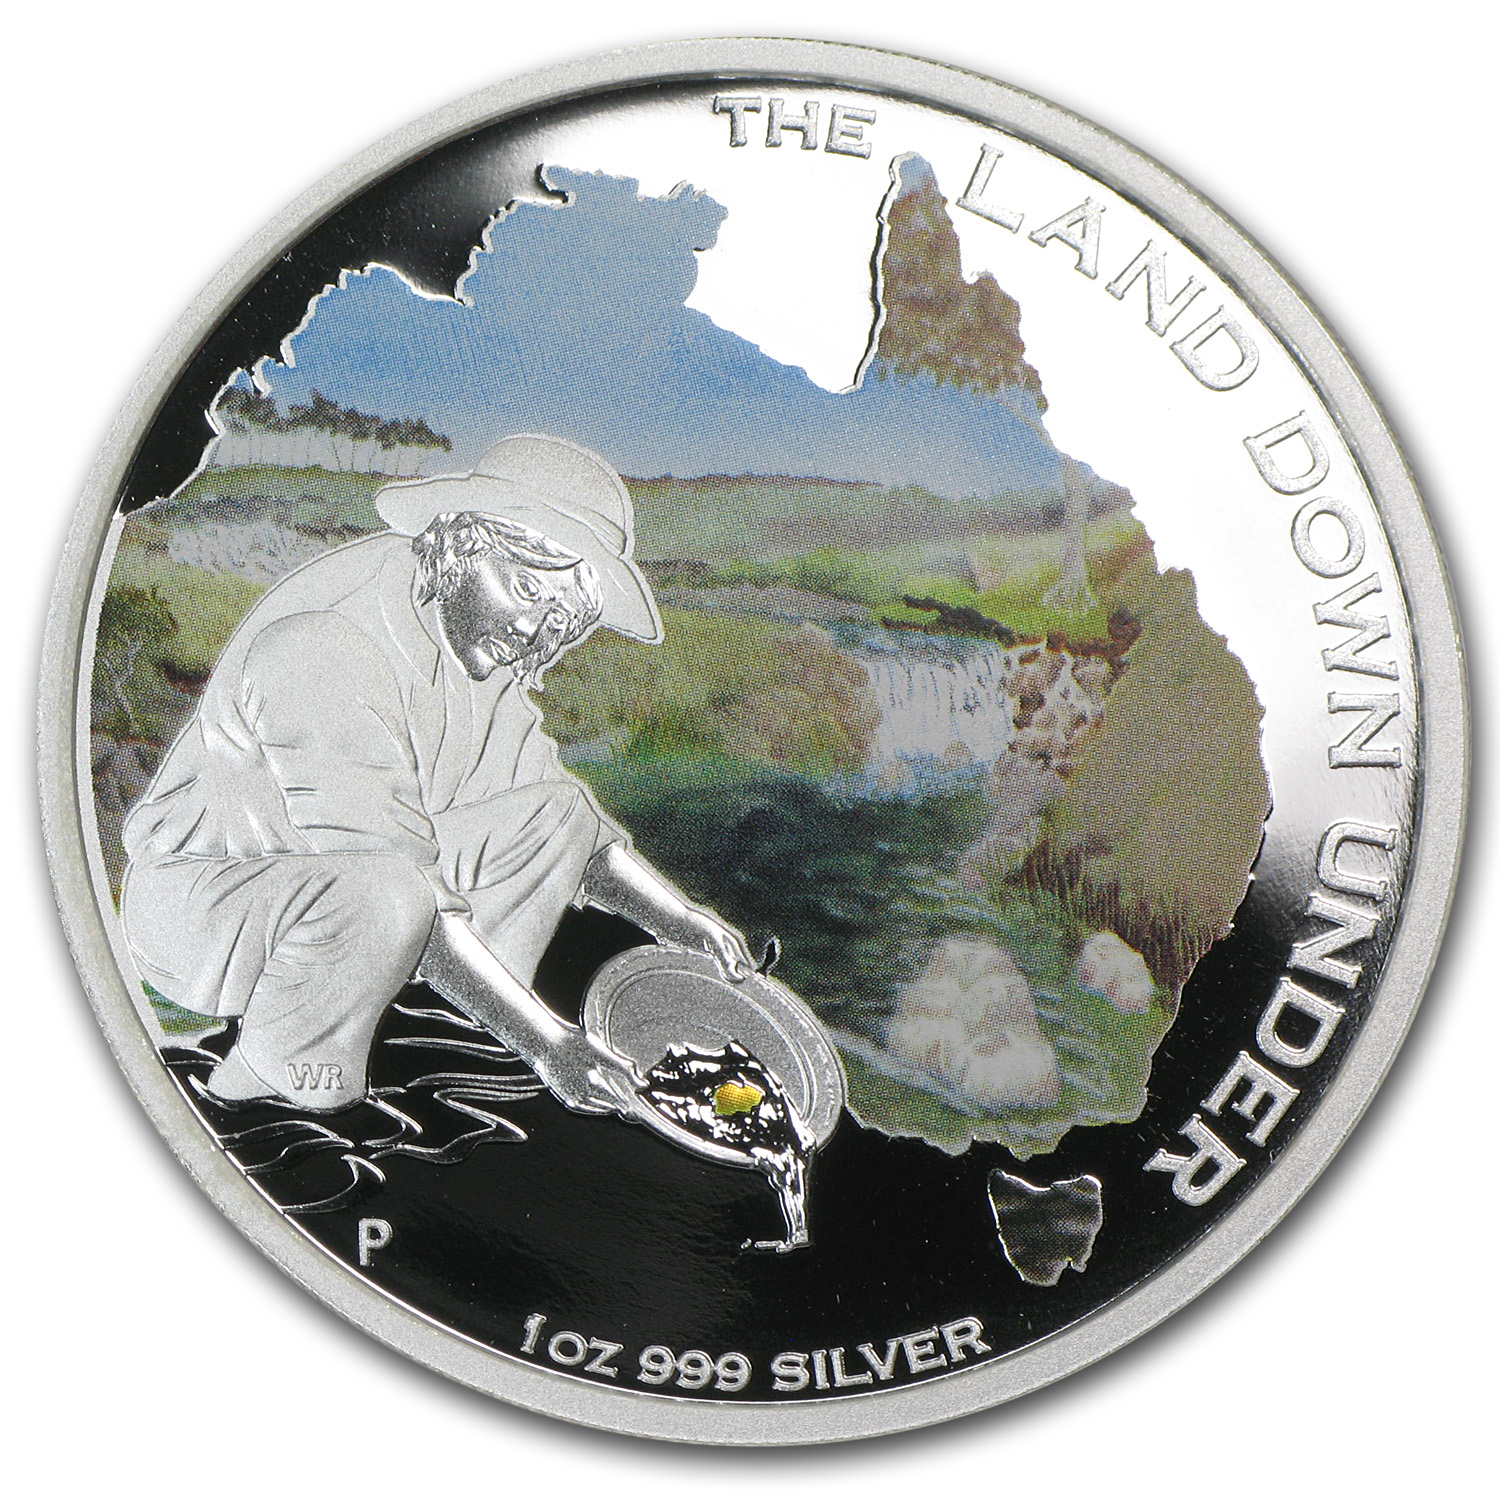 2014 Australia 1 oz Silver The Land Down Under Gold Rush Prf